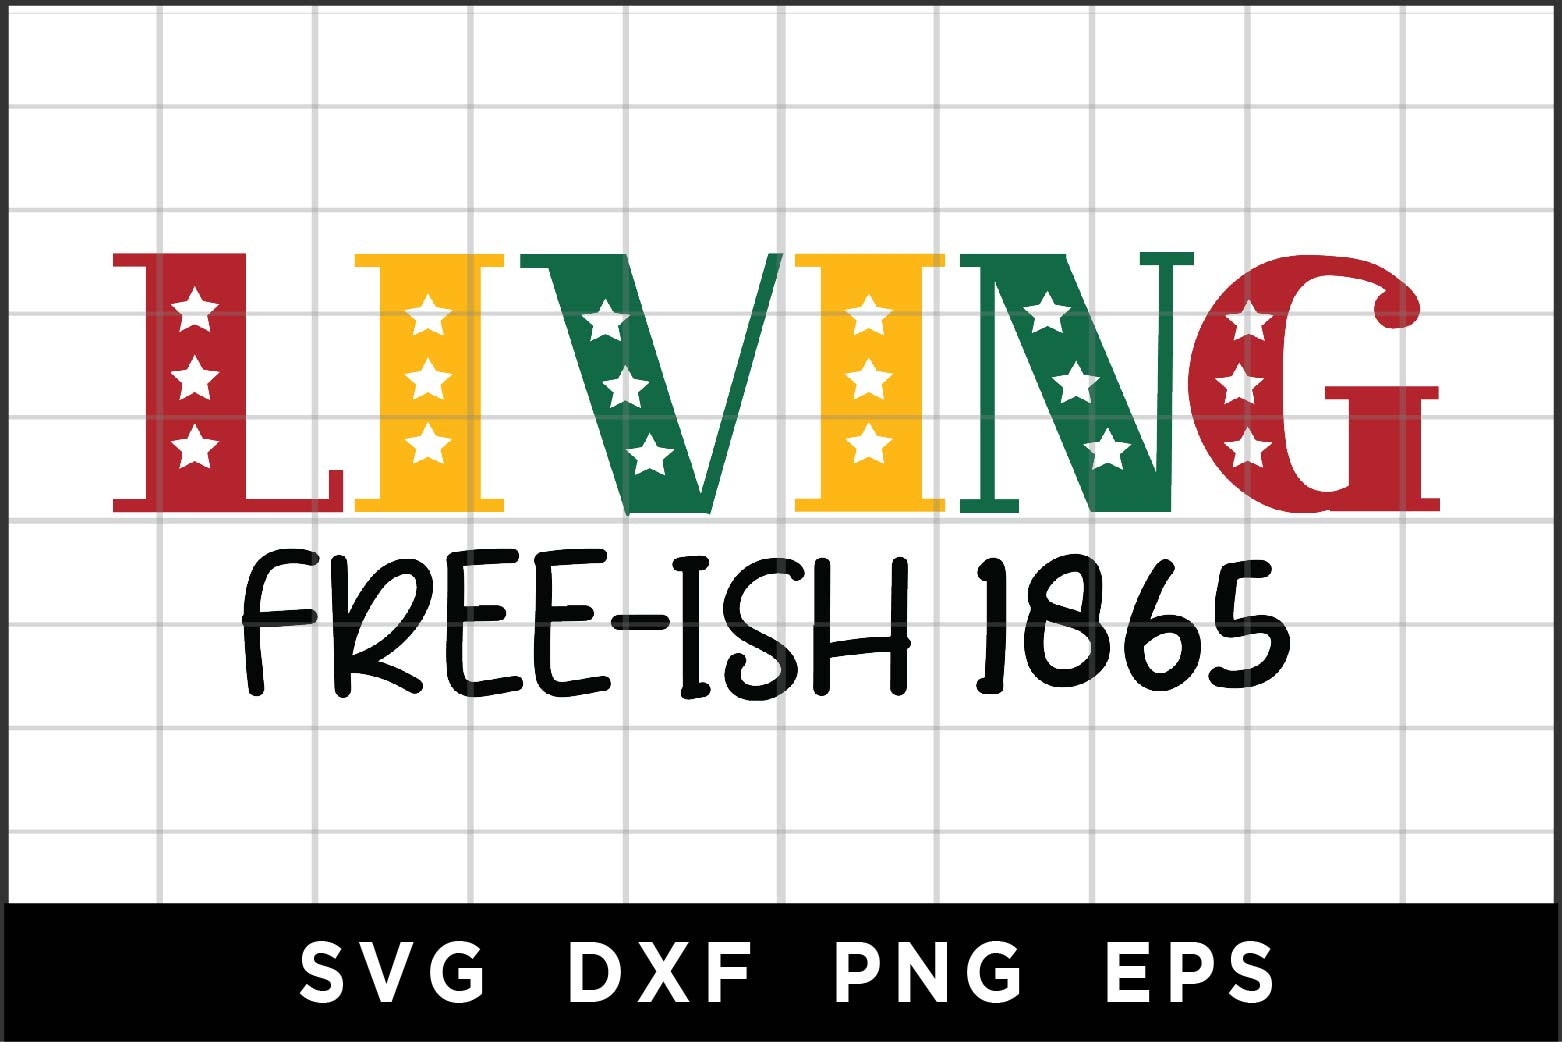 Download Free D3w5ur N0afzzm for Cricut Explore, Silhouette and other cutting machines.